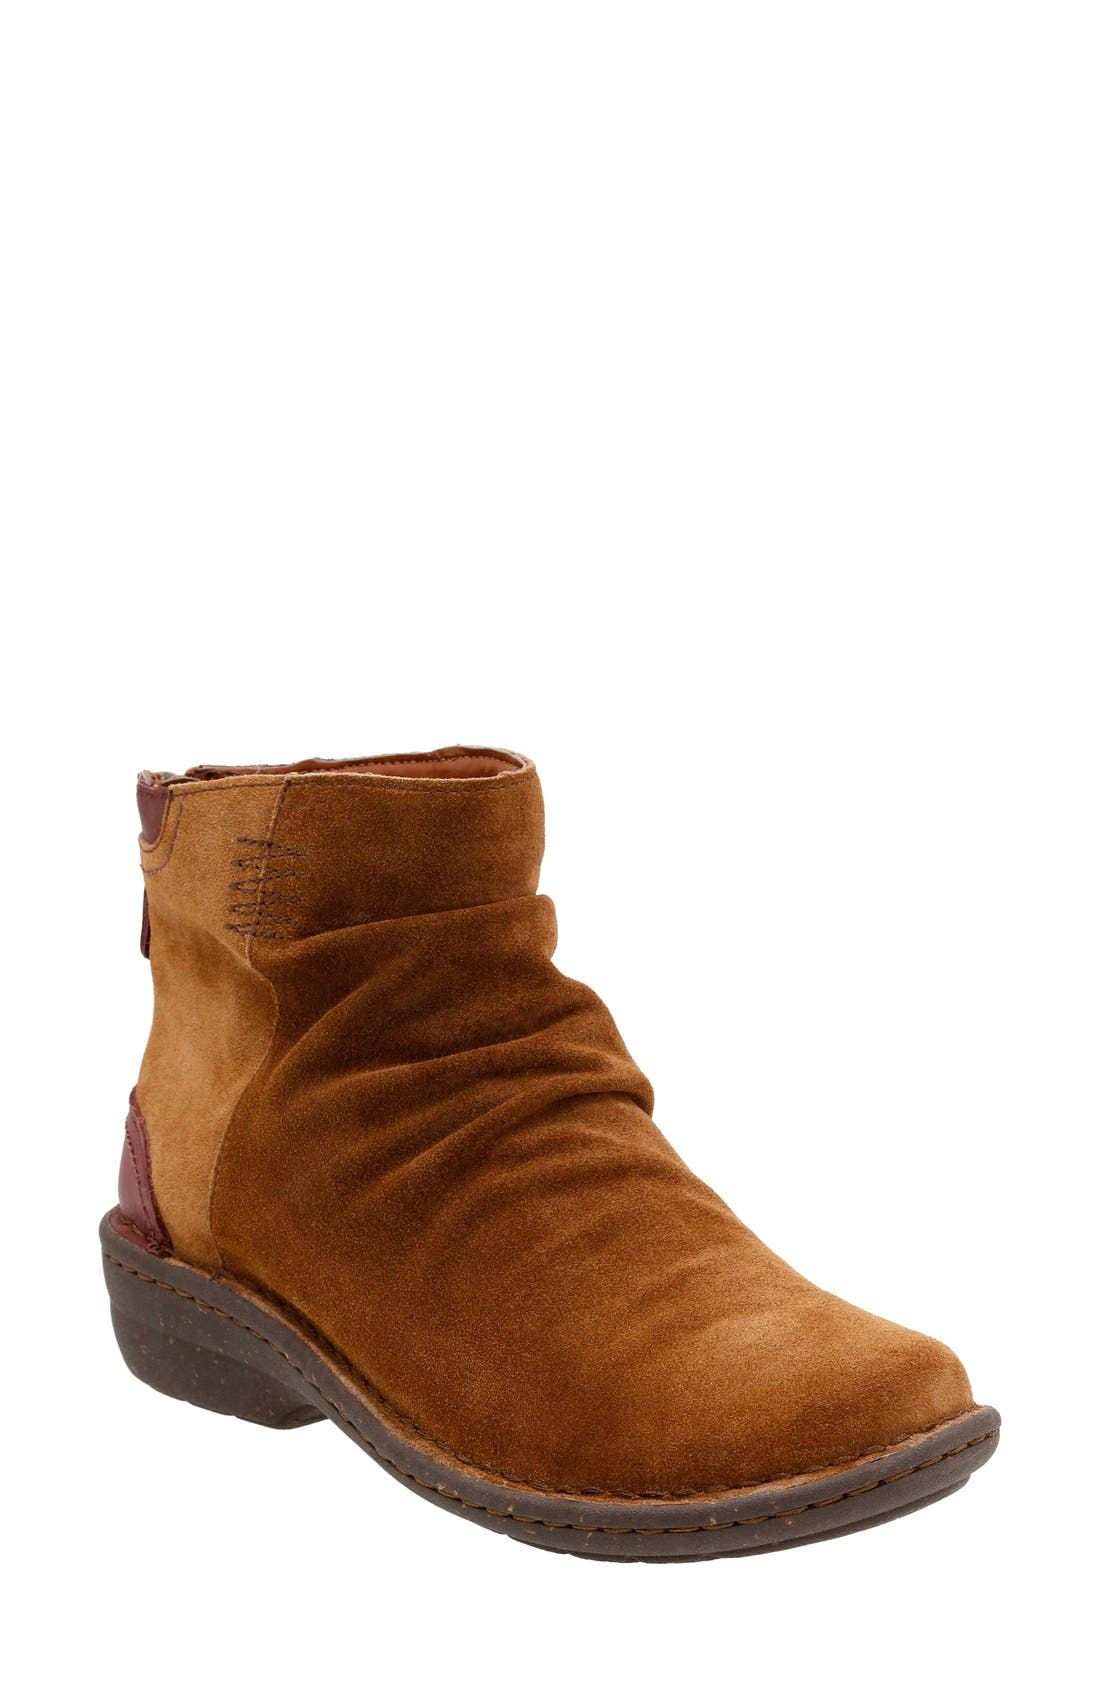 'Avington Swan' Ankle Boot,                             Main thumbnail 1, color,                             204